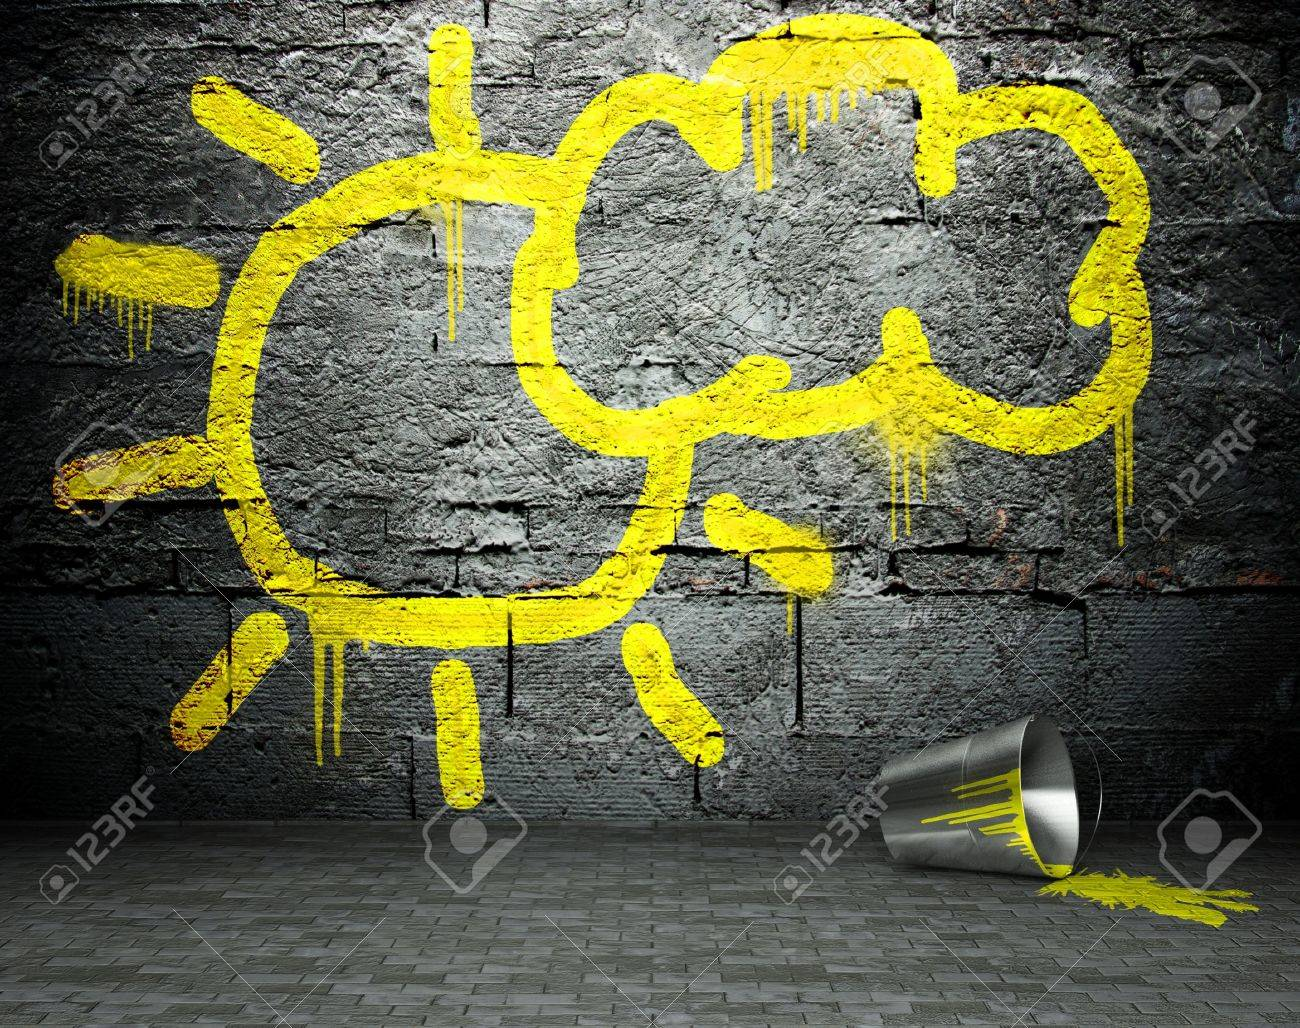 Graffiti Wall With Sun And Cloud Sign, Street Art Background Stock ...